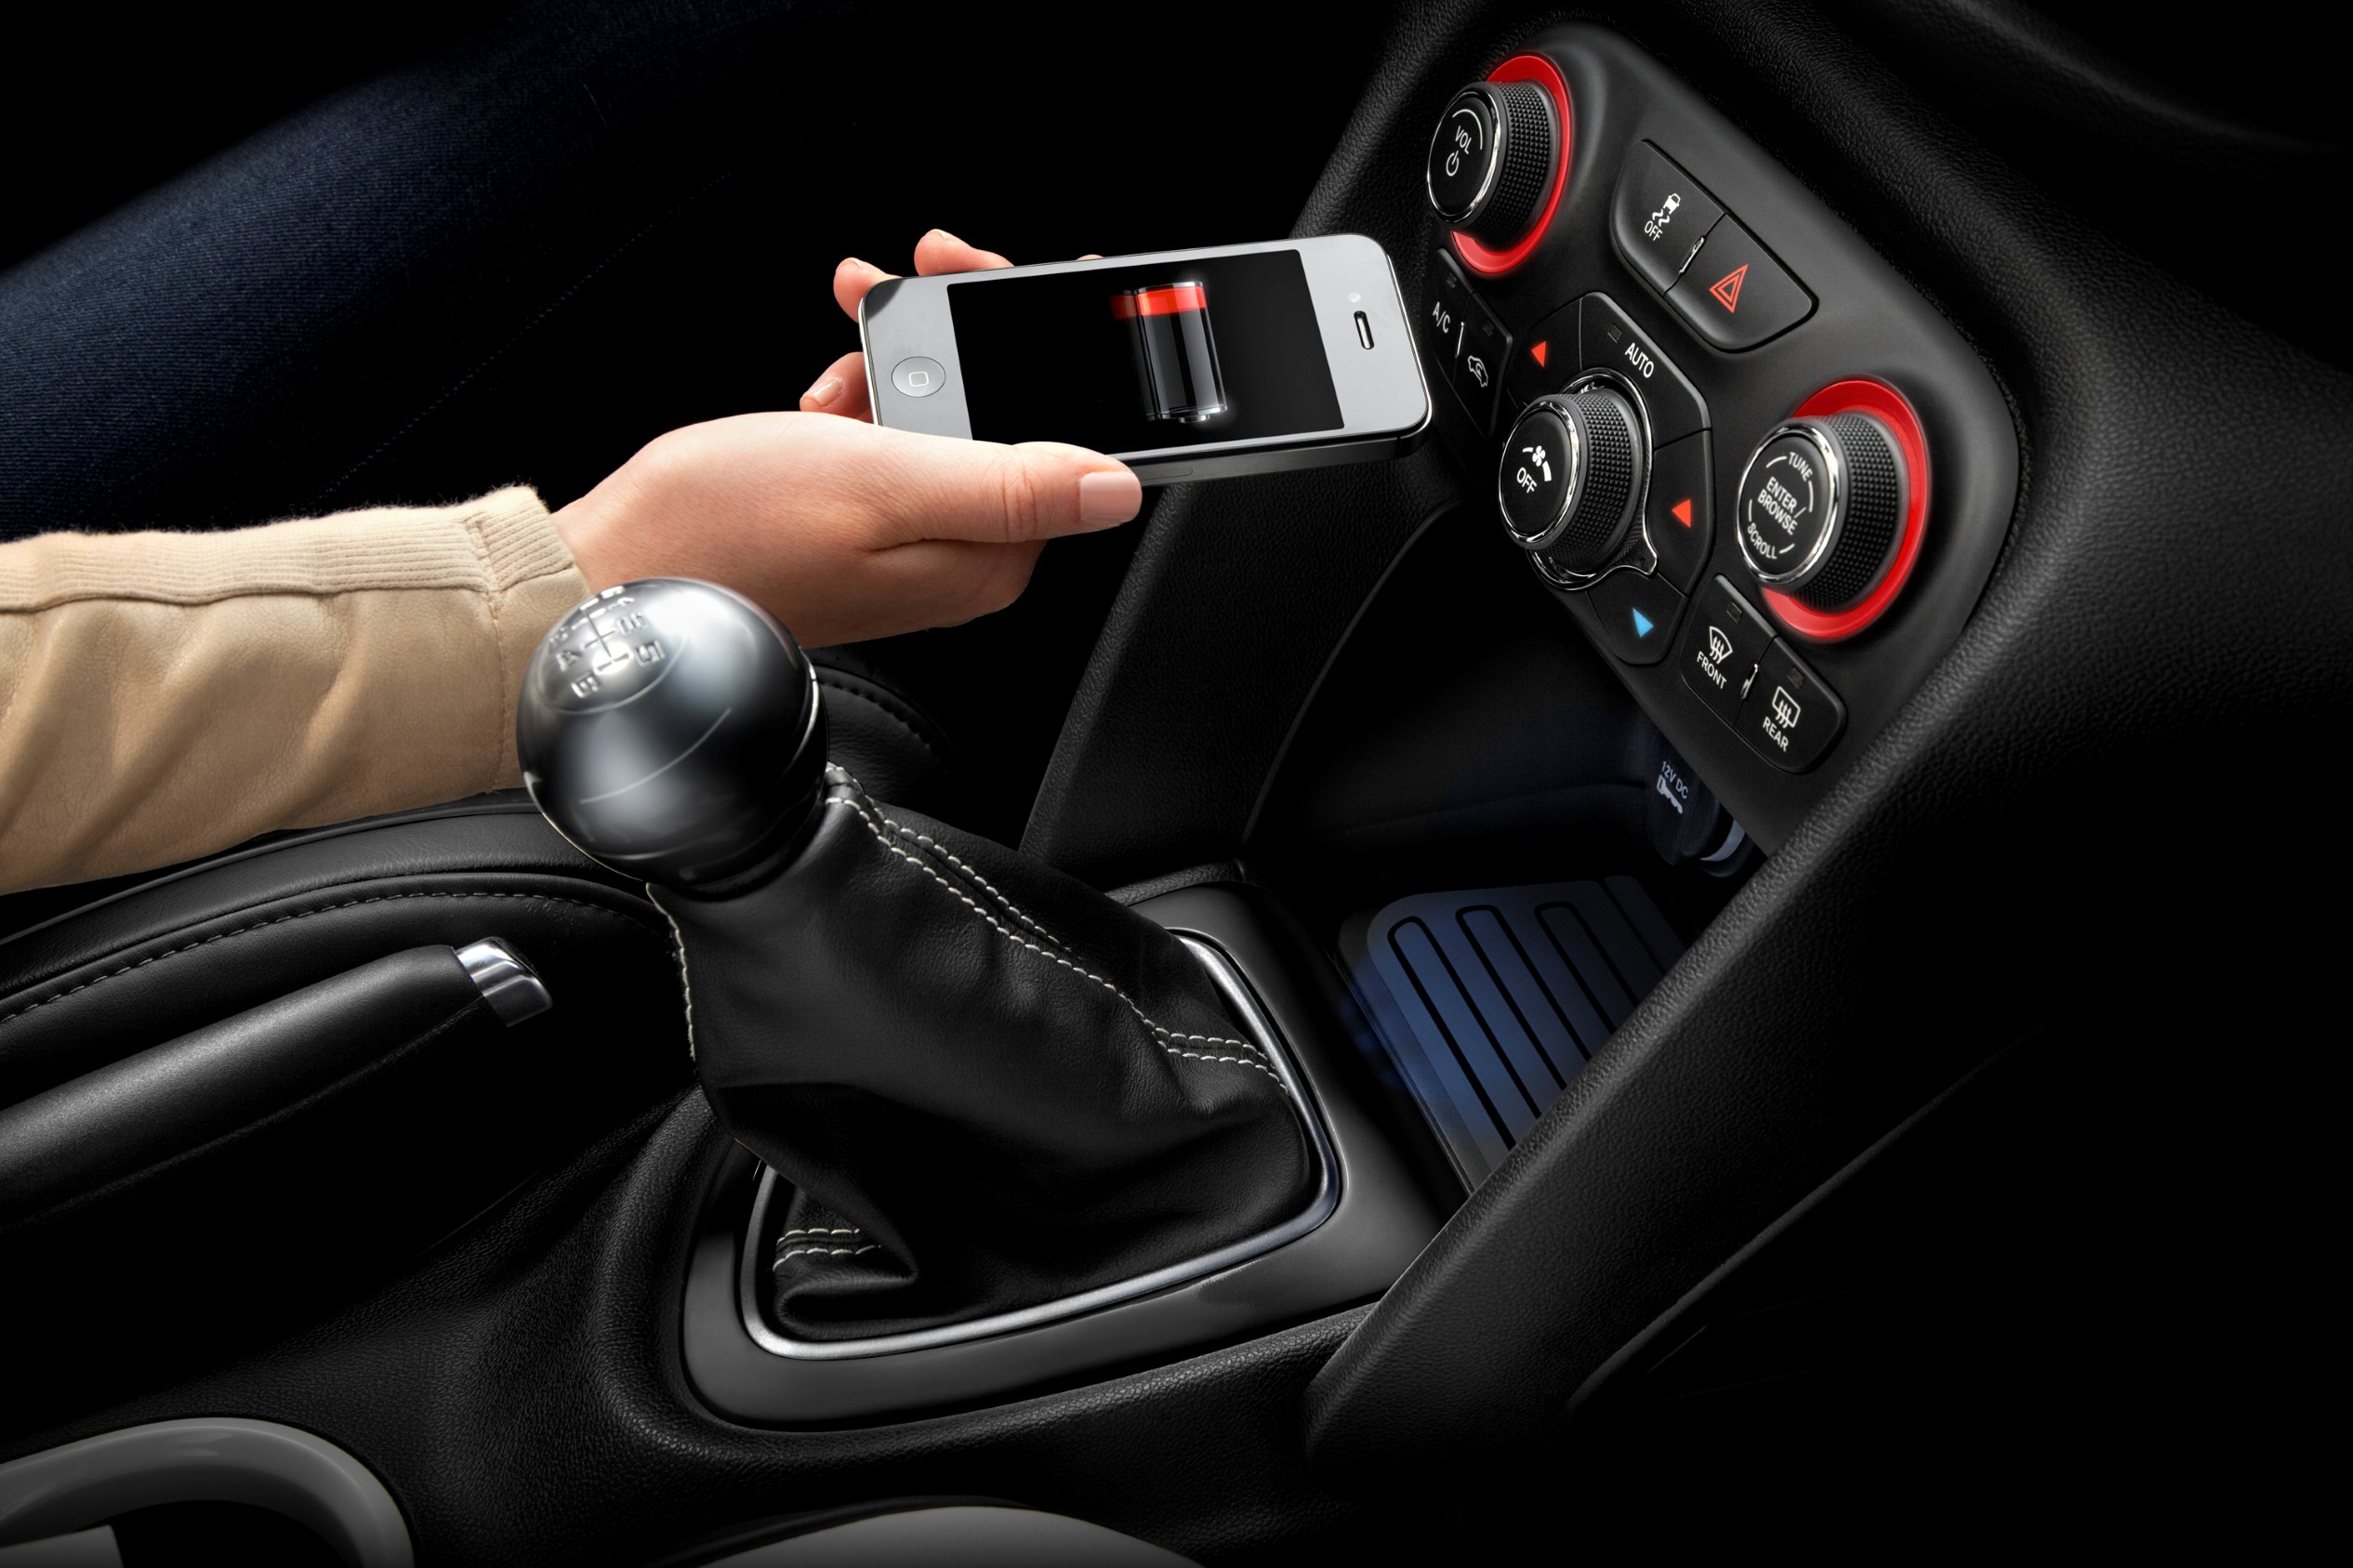 Mopar Gives 2013 Dodge Dart First In Car Wireless Charging Pad